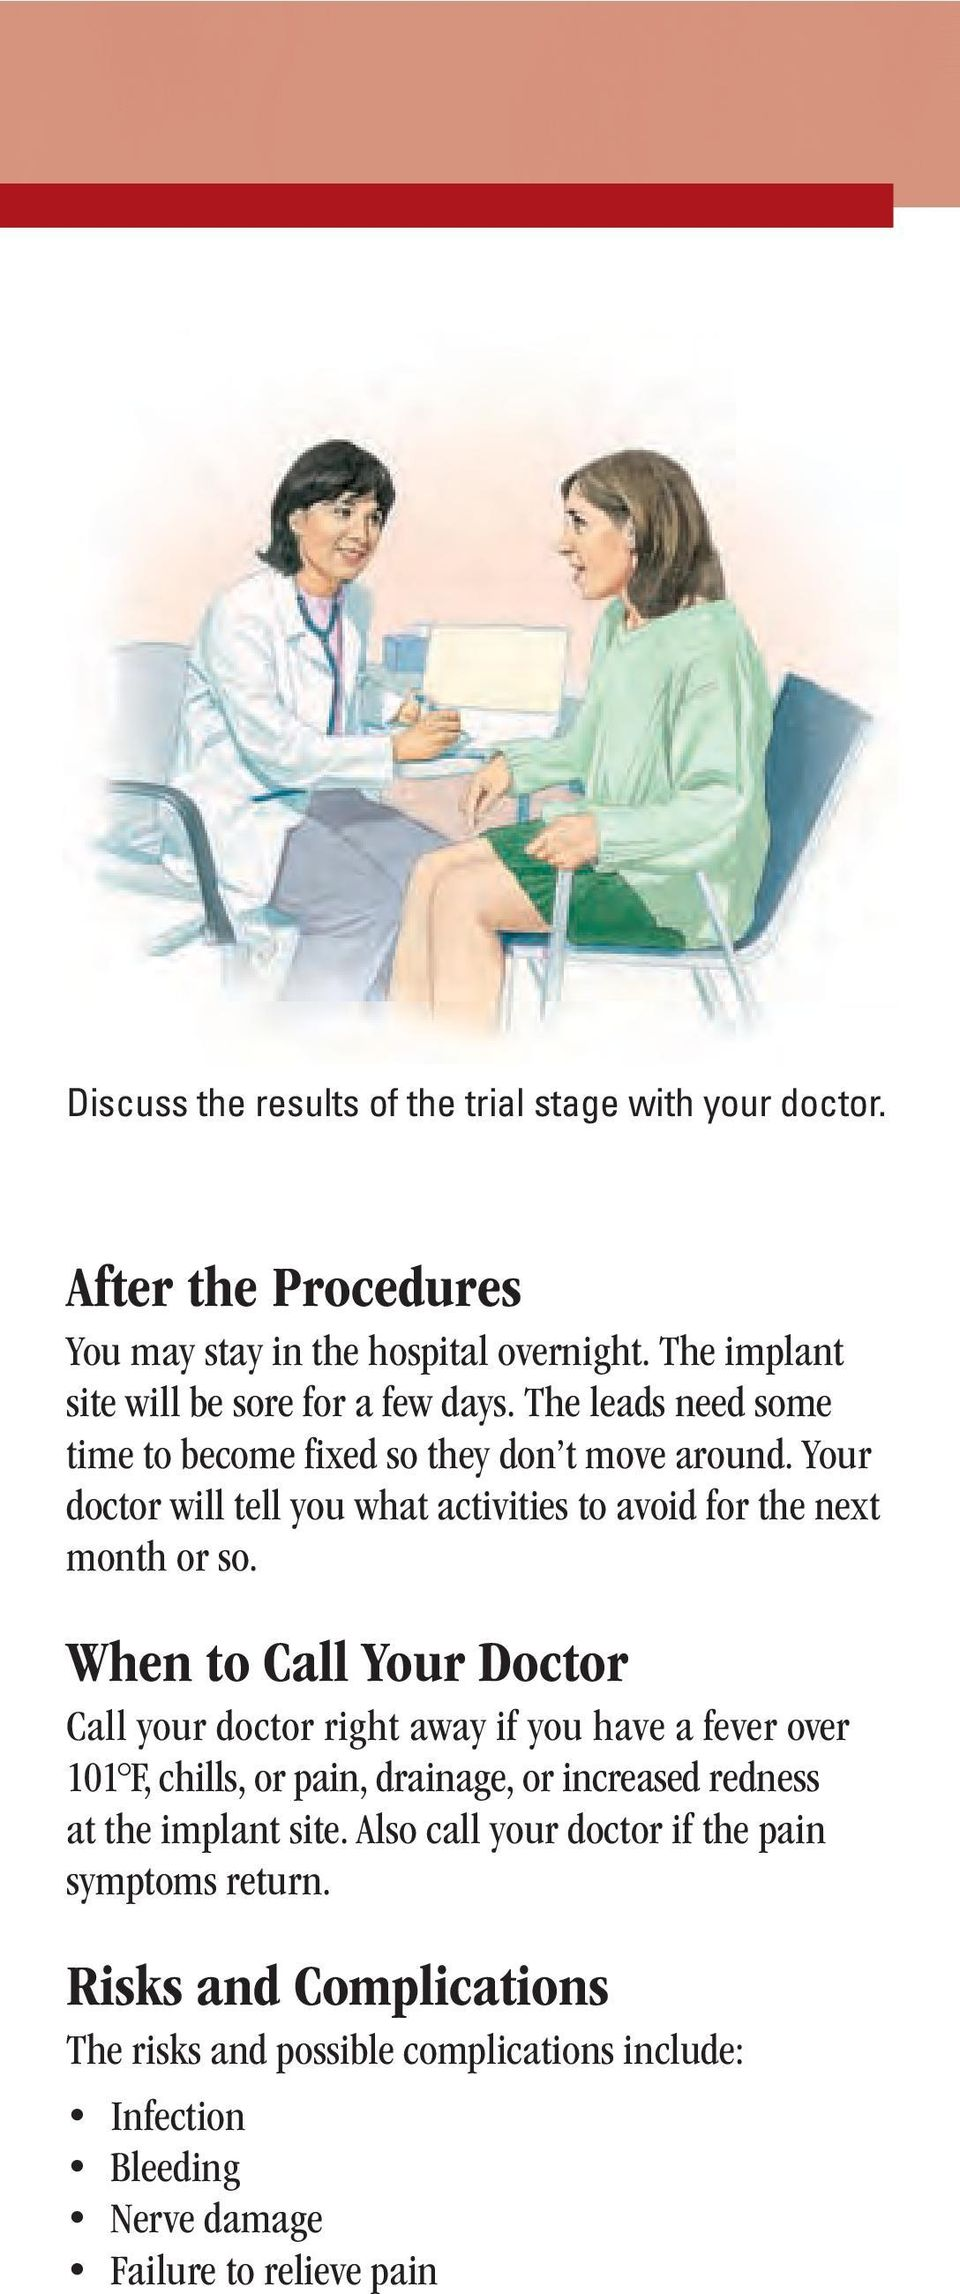 Your doctor will tell you what activities to avoid for the next month or so.